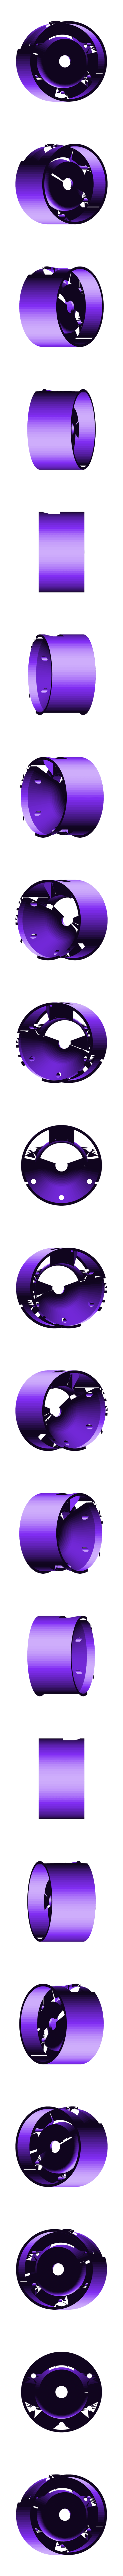 dial-mid.stl Download free STL file CircuitPython Media Dial • 3D printing design, Adafruit